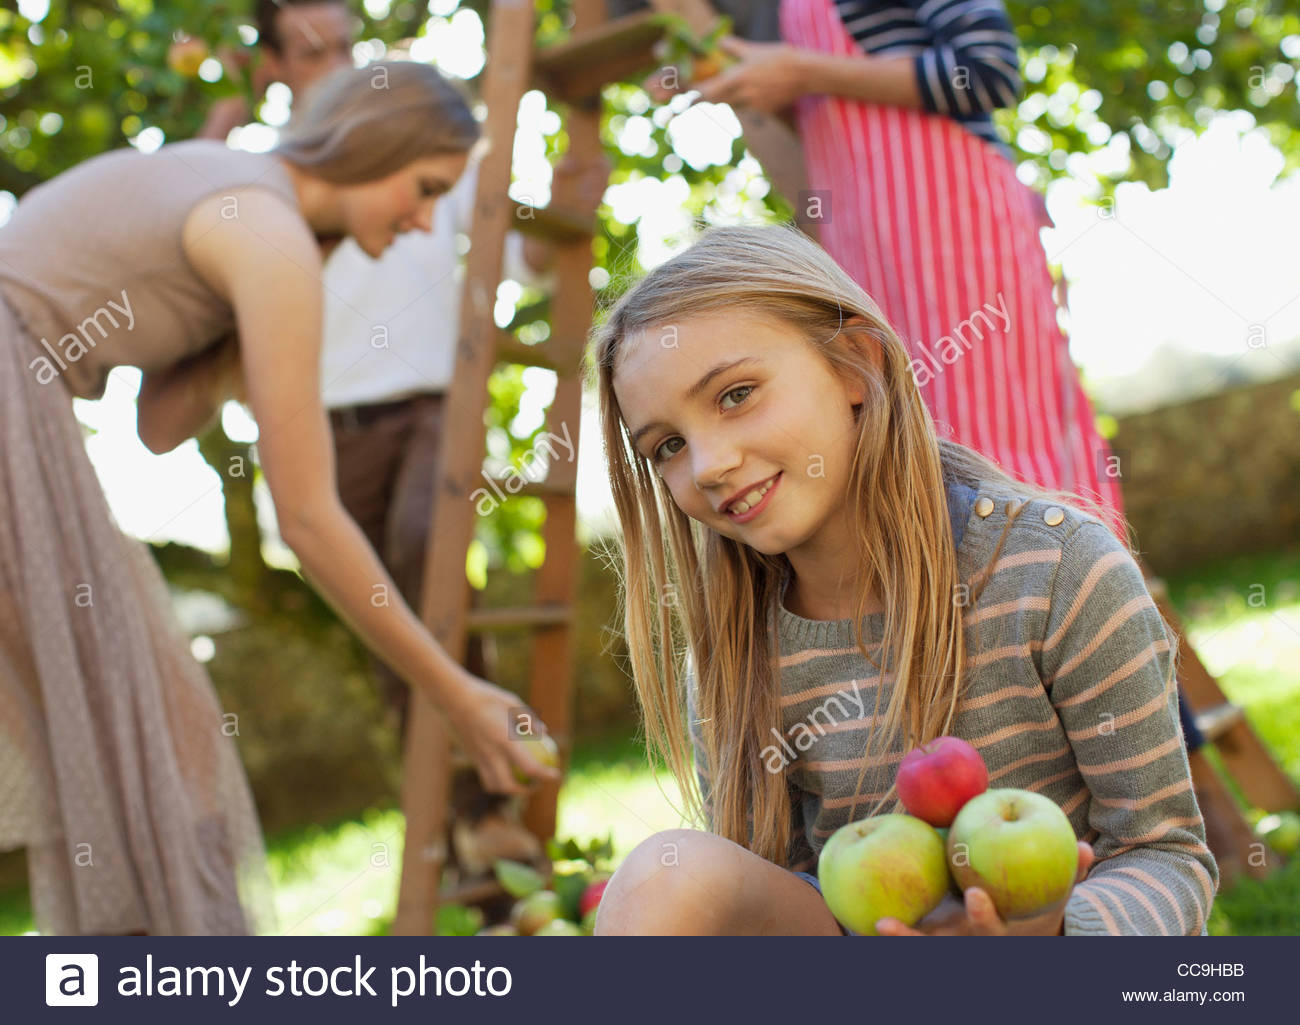 Portrait of smiling girl holding apples in orchard Photo Stock